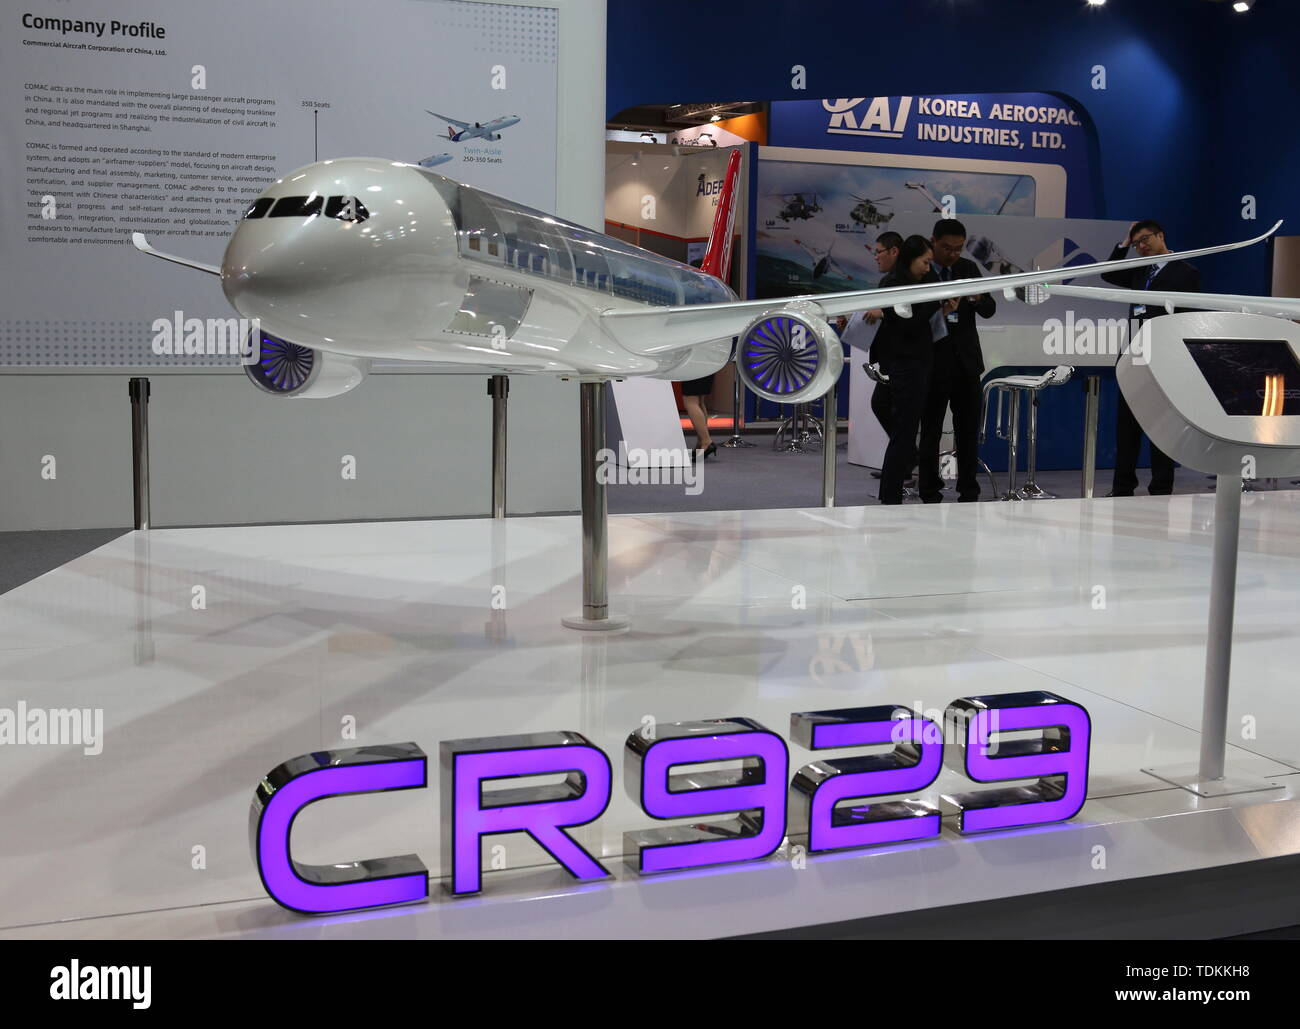 France. 17th June, 2019. Paris, France. 17th June, 2019A scale model of a CR929 long-range airliner, developed by CRAIC (China-Russia Commercial Aircraft International Corp Ltd), on display at the 2019 Paris Air Show opened at Le Bourget Airport. Marina Lystseva/TASS Credit: ITAR-TASS News Agency/Alamy Live News - Stock Image